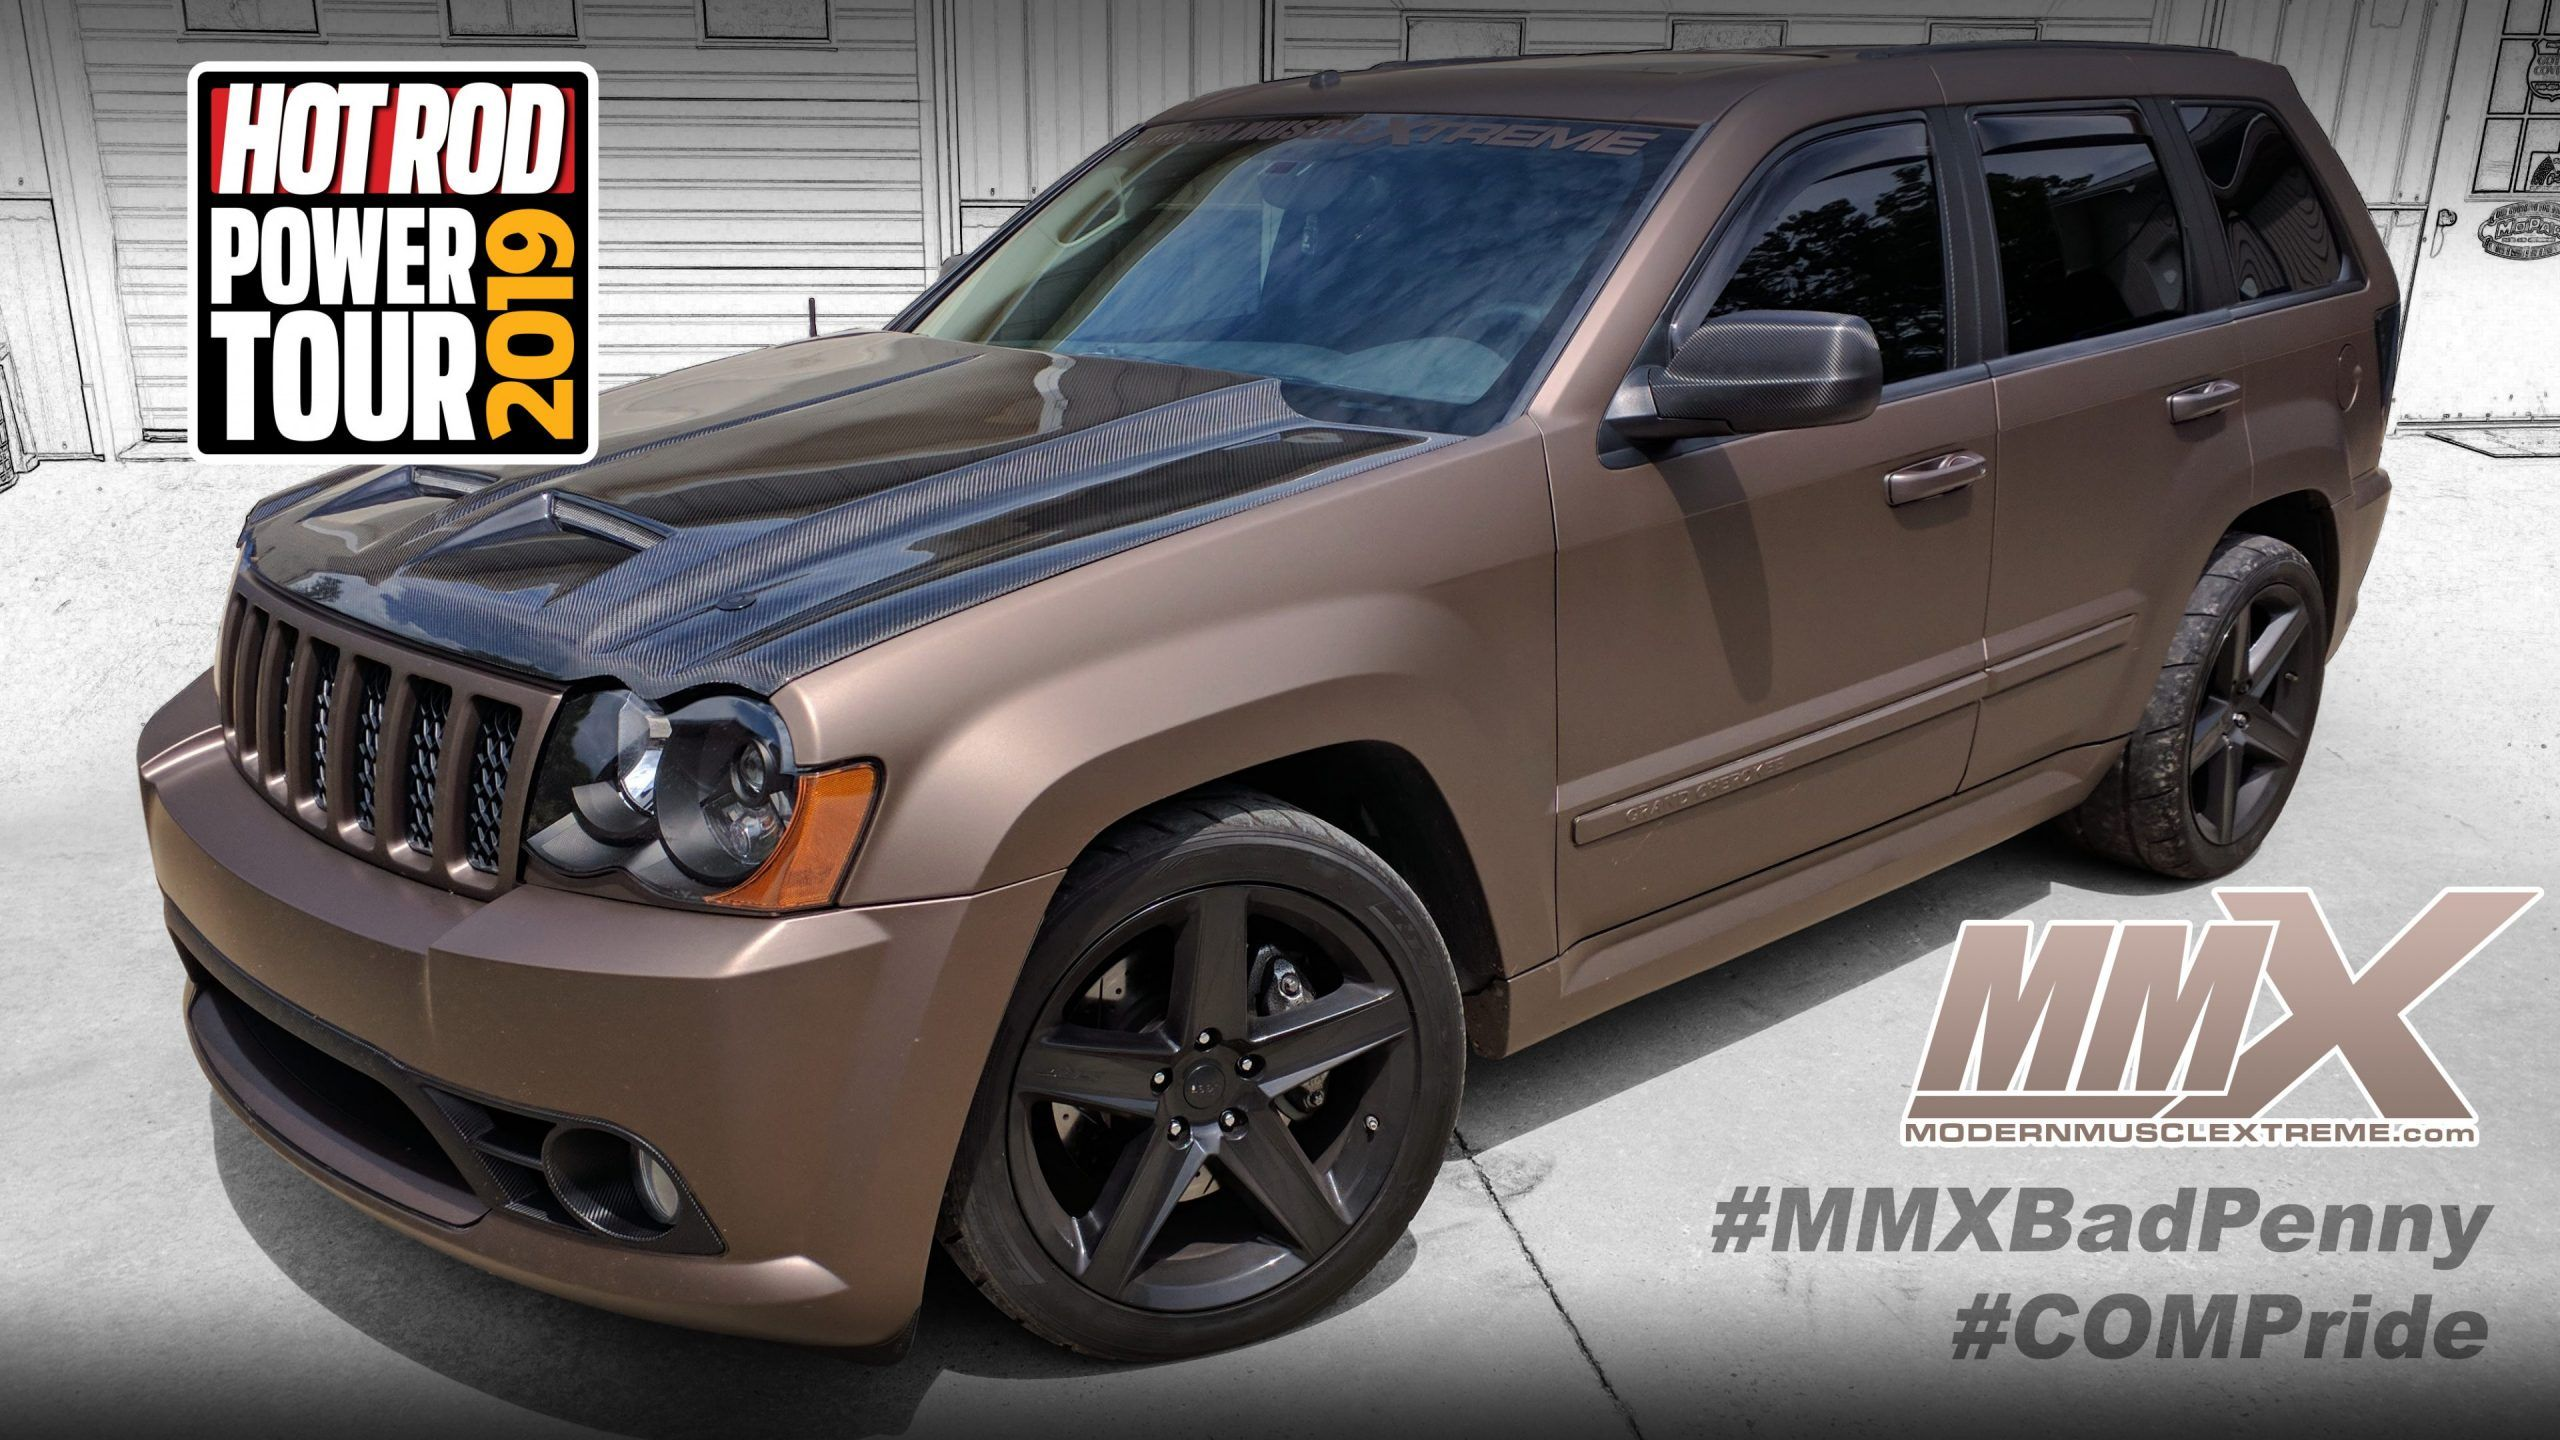 2008 Dodge Ram 1500 5 7 Hemi Oil Capacity Price Design And Review Best Gas Mileage Cheap Suv Little Sport